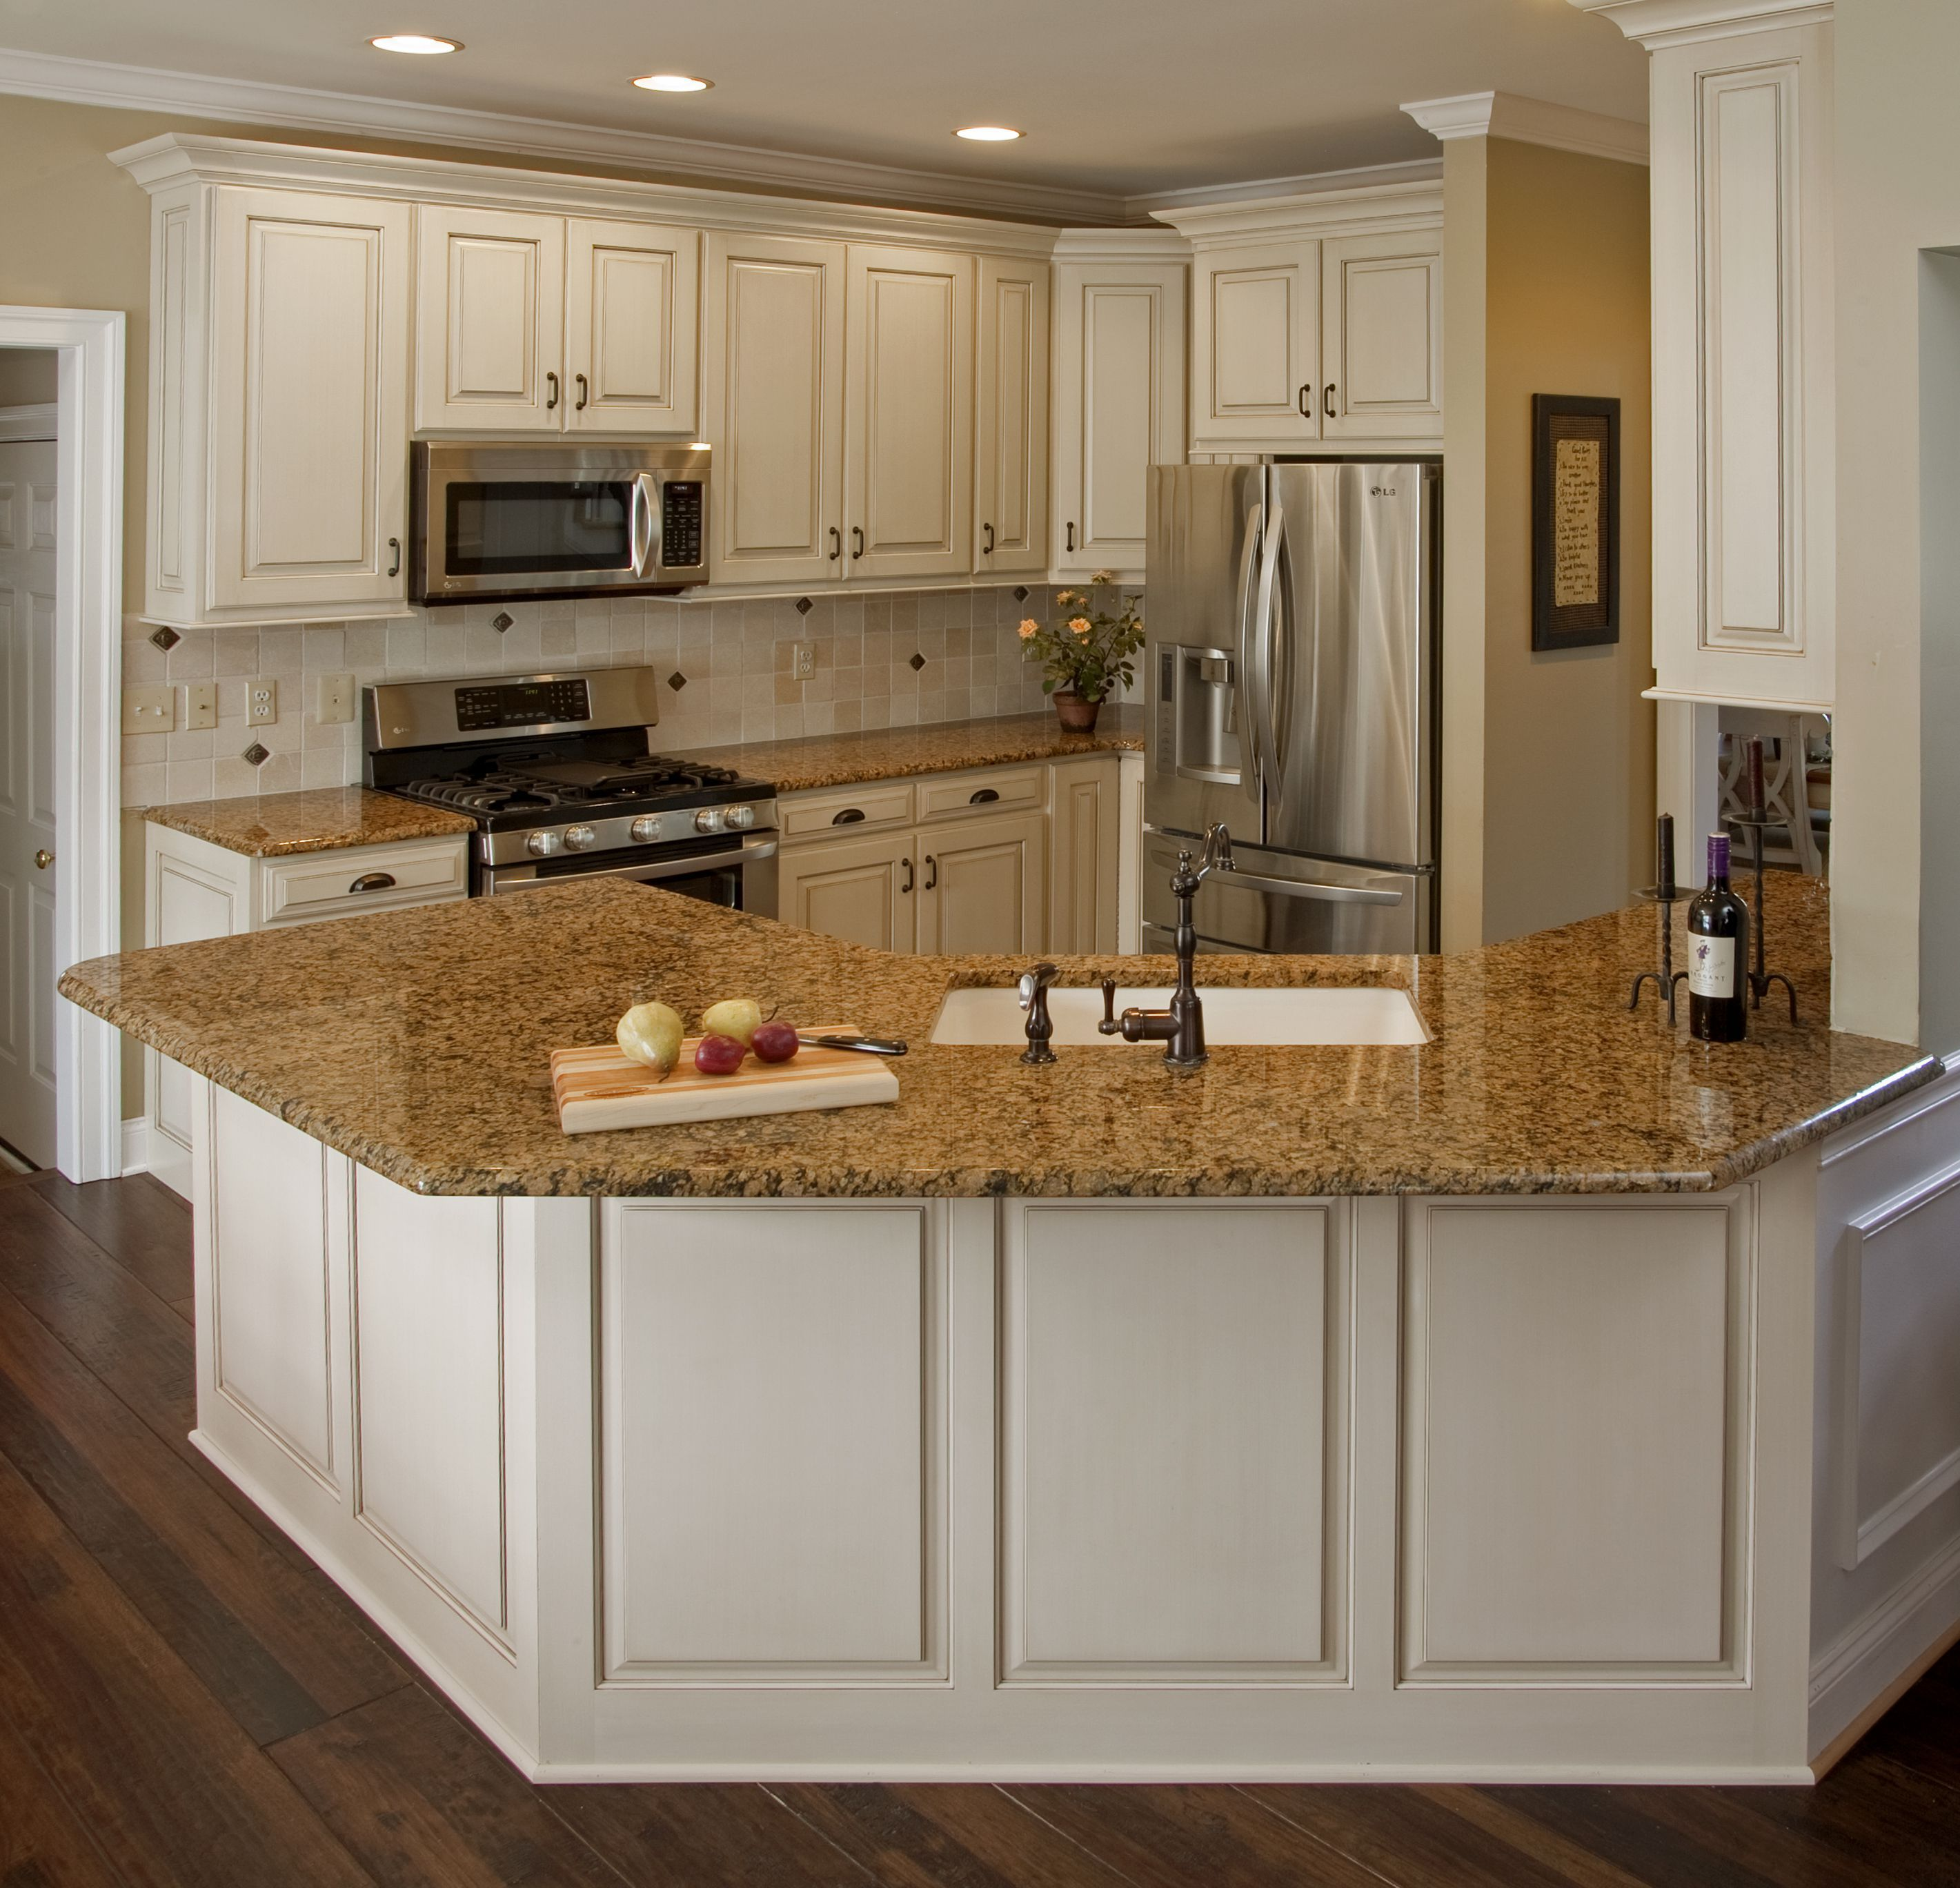 Inspiring kitchen decor using cabinet refacing cost on Refacing bathroom cabinets cost